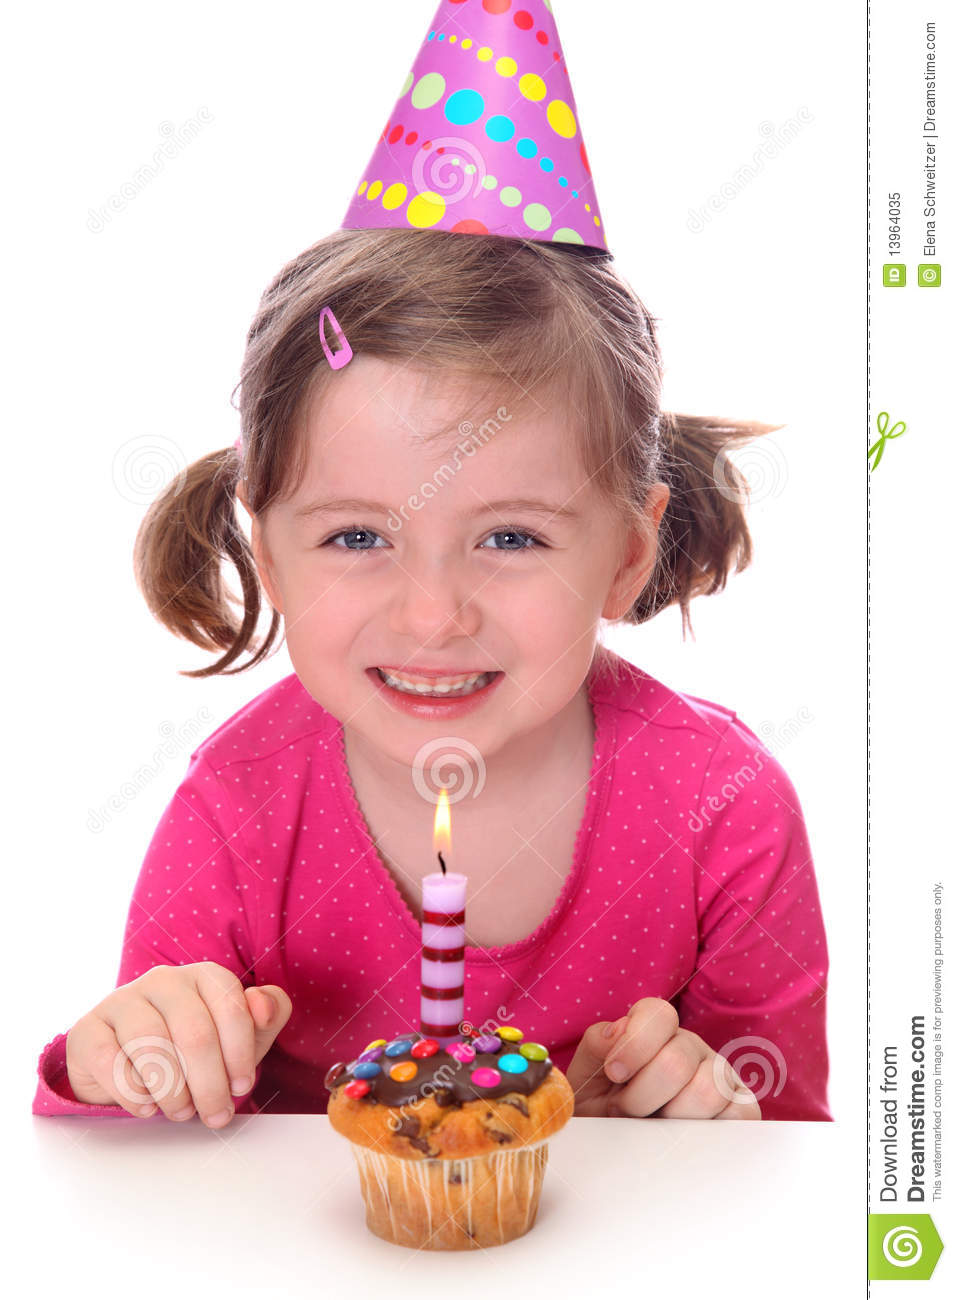 Birthday Cake Pics For Little Girl : Little Girl With Birthday Cake Royalty Free Stock Photo ...